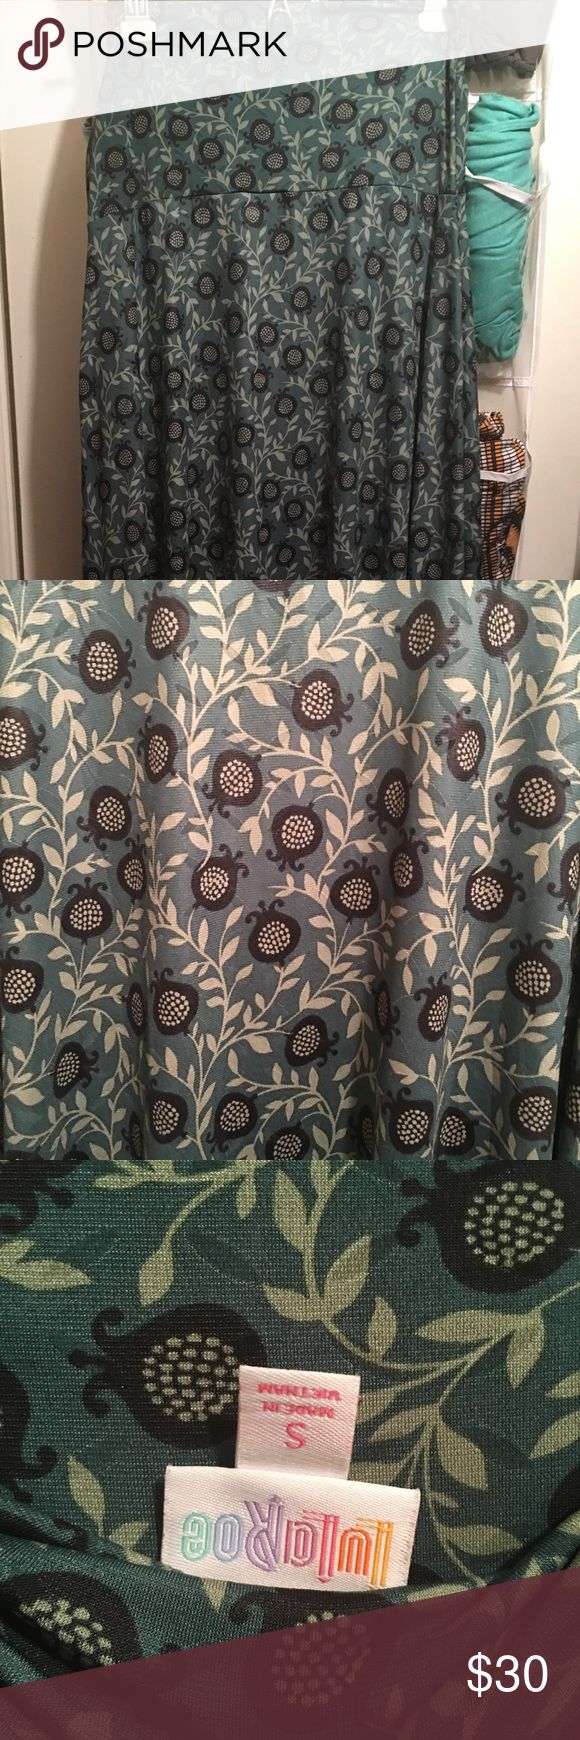 LuLaRoe Maxi Skirt/Dress (Small) EUC Worn once and washed according to LLR standards, this maxi is in EXCELLENT used condition. The material is has a leatherette feel, and it's more slinky than cottony. The design is like dark navy flower buds and vines on a blue-green background. If you're familiar with LLR, you know a Small can fit up to a 14/16 comfortably, even tough the chart suggests 2-4. I'm a bigger woman, and this skirt has PLENTY of stretch. 🐶DISCLOSURE: my pets don't smoke, but I…